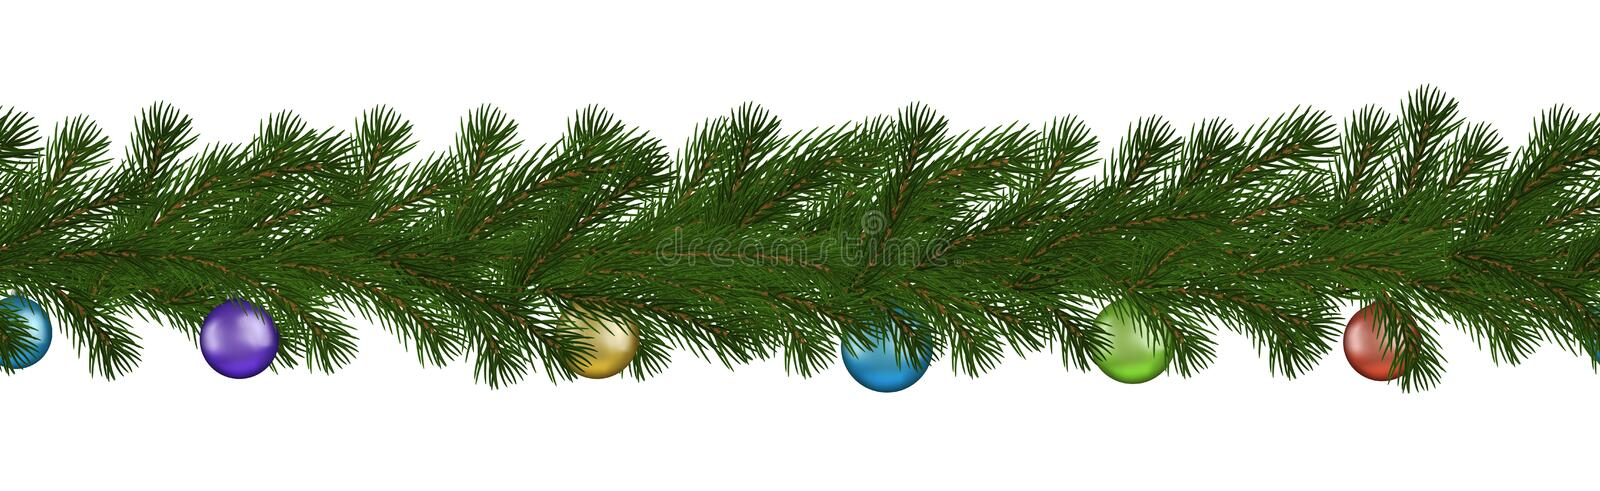 Green Christmas border of pine branch and ball, seamless vector isolated on white background. Xmas g royalty free illustration